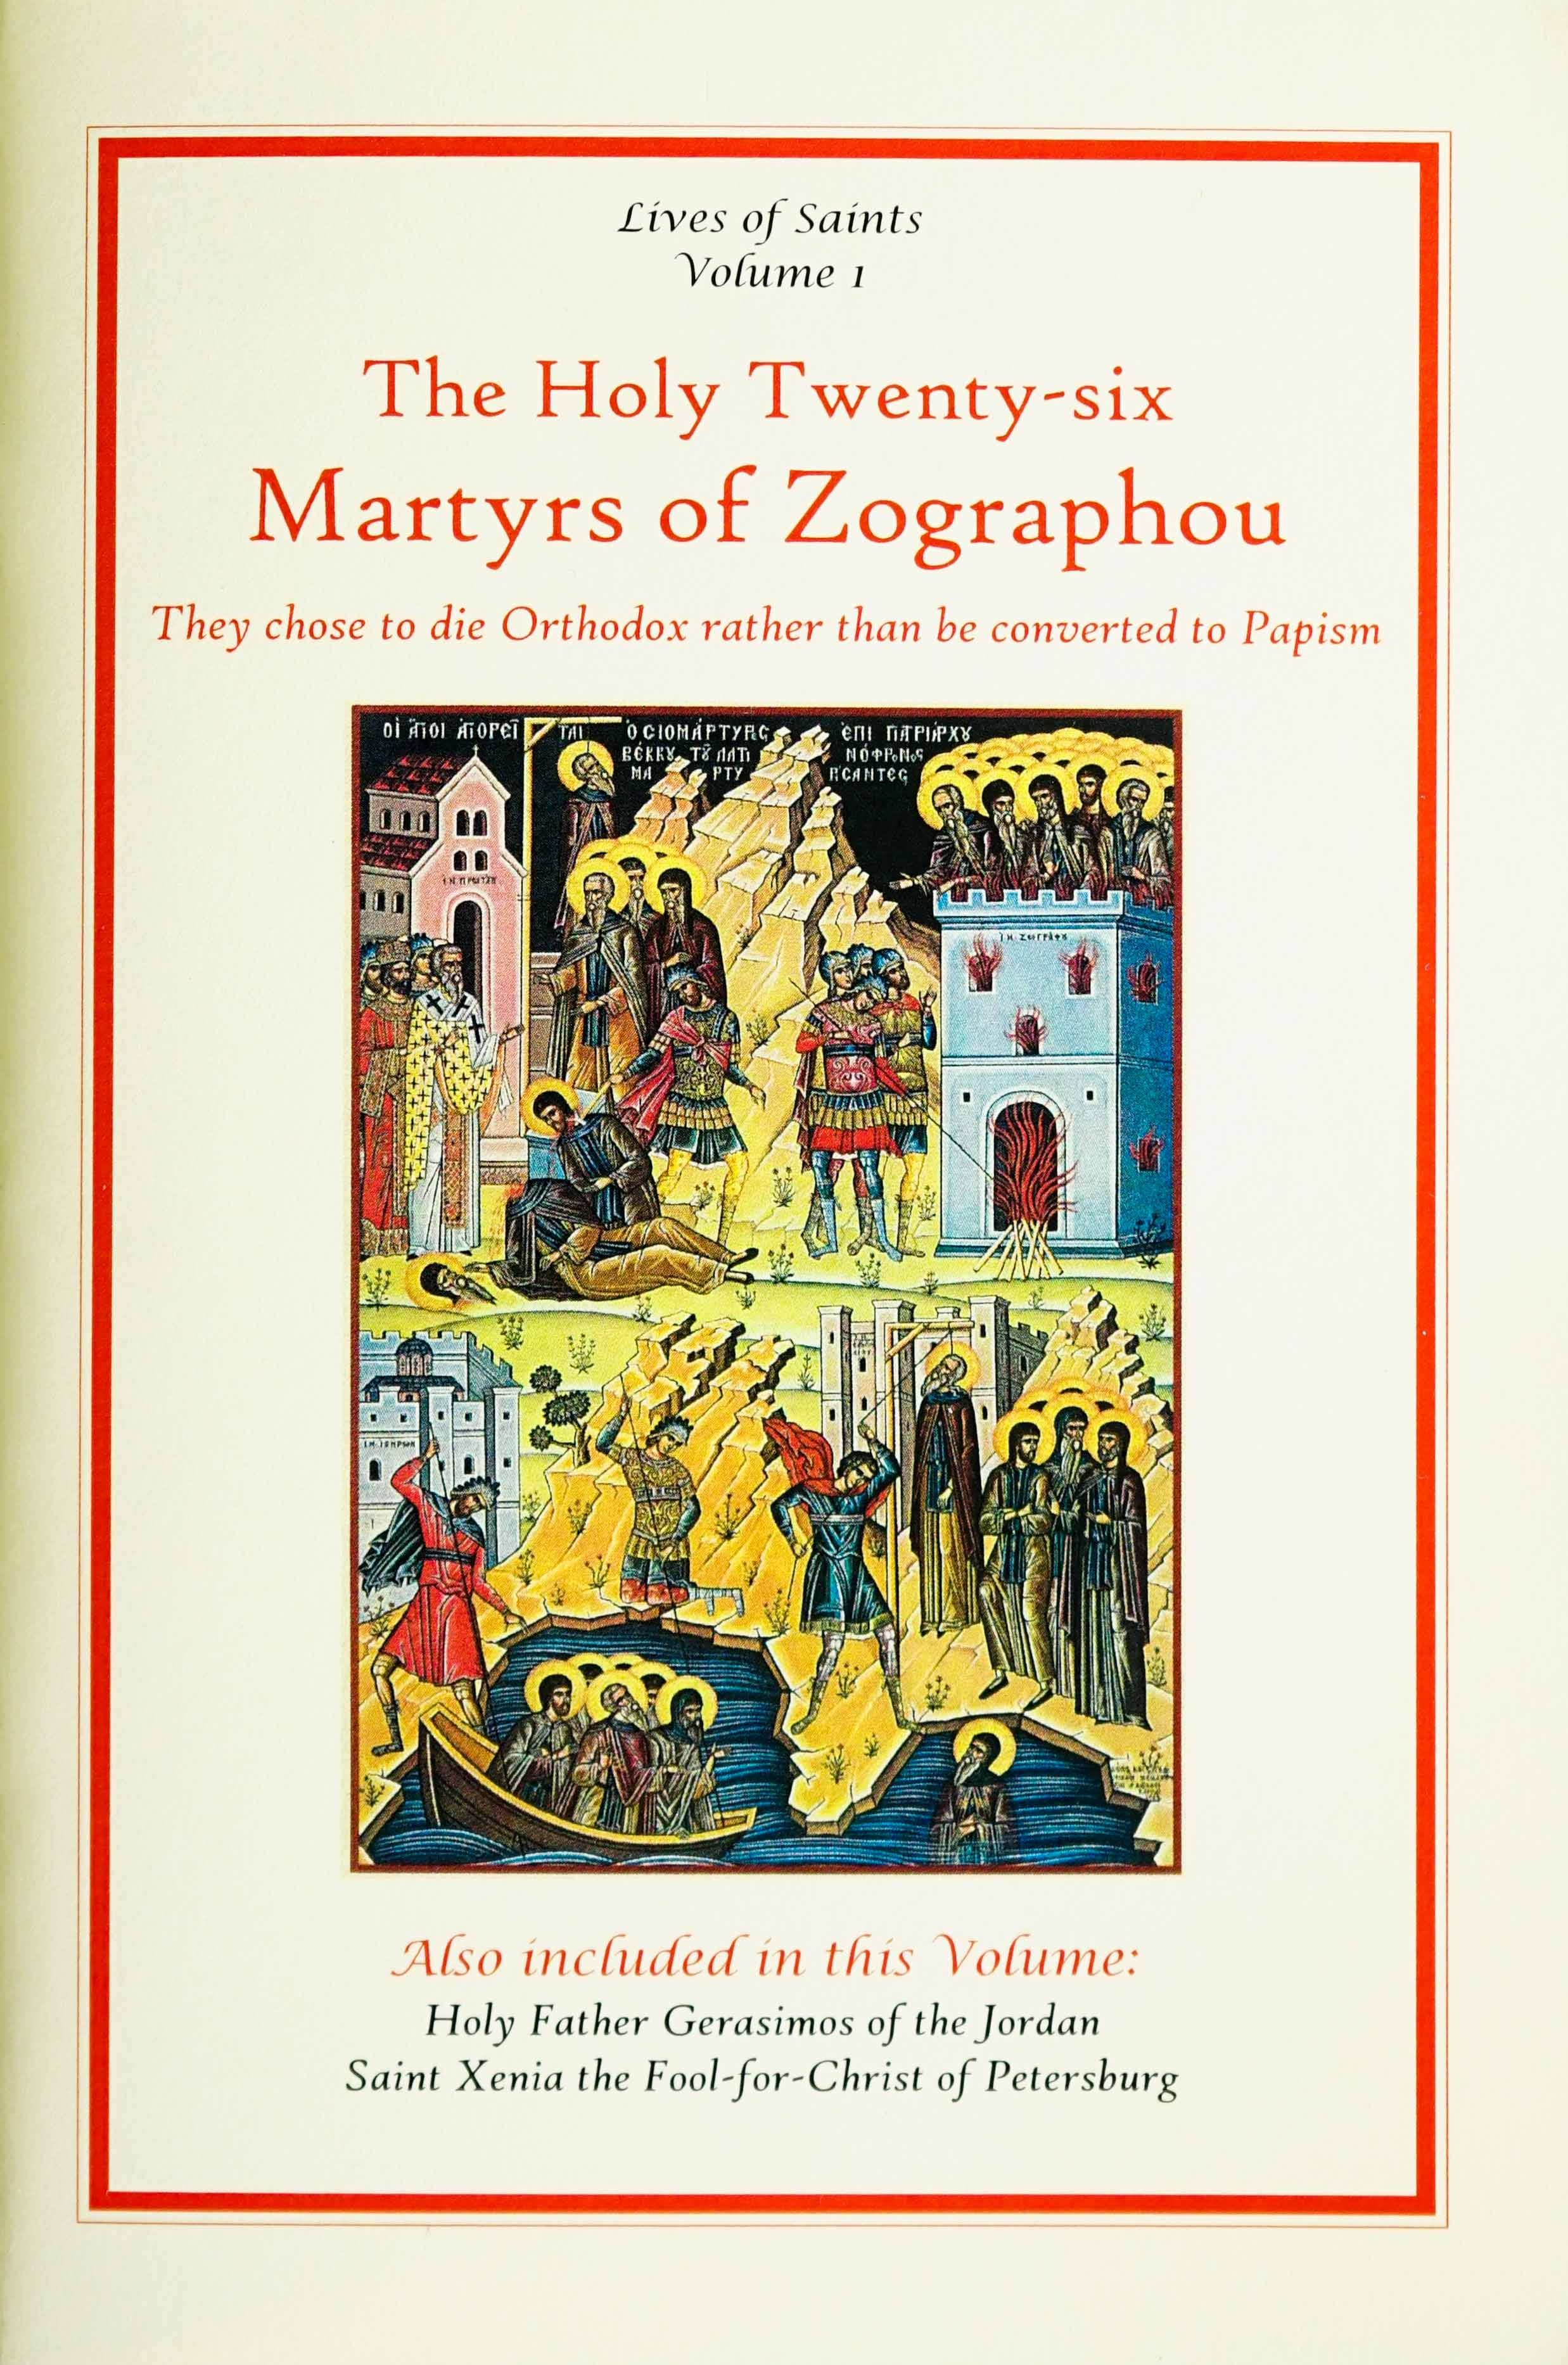 Lives of Saints Vol. 01: The Holy Twenty-six Martyrs of Zographou